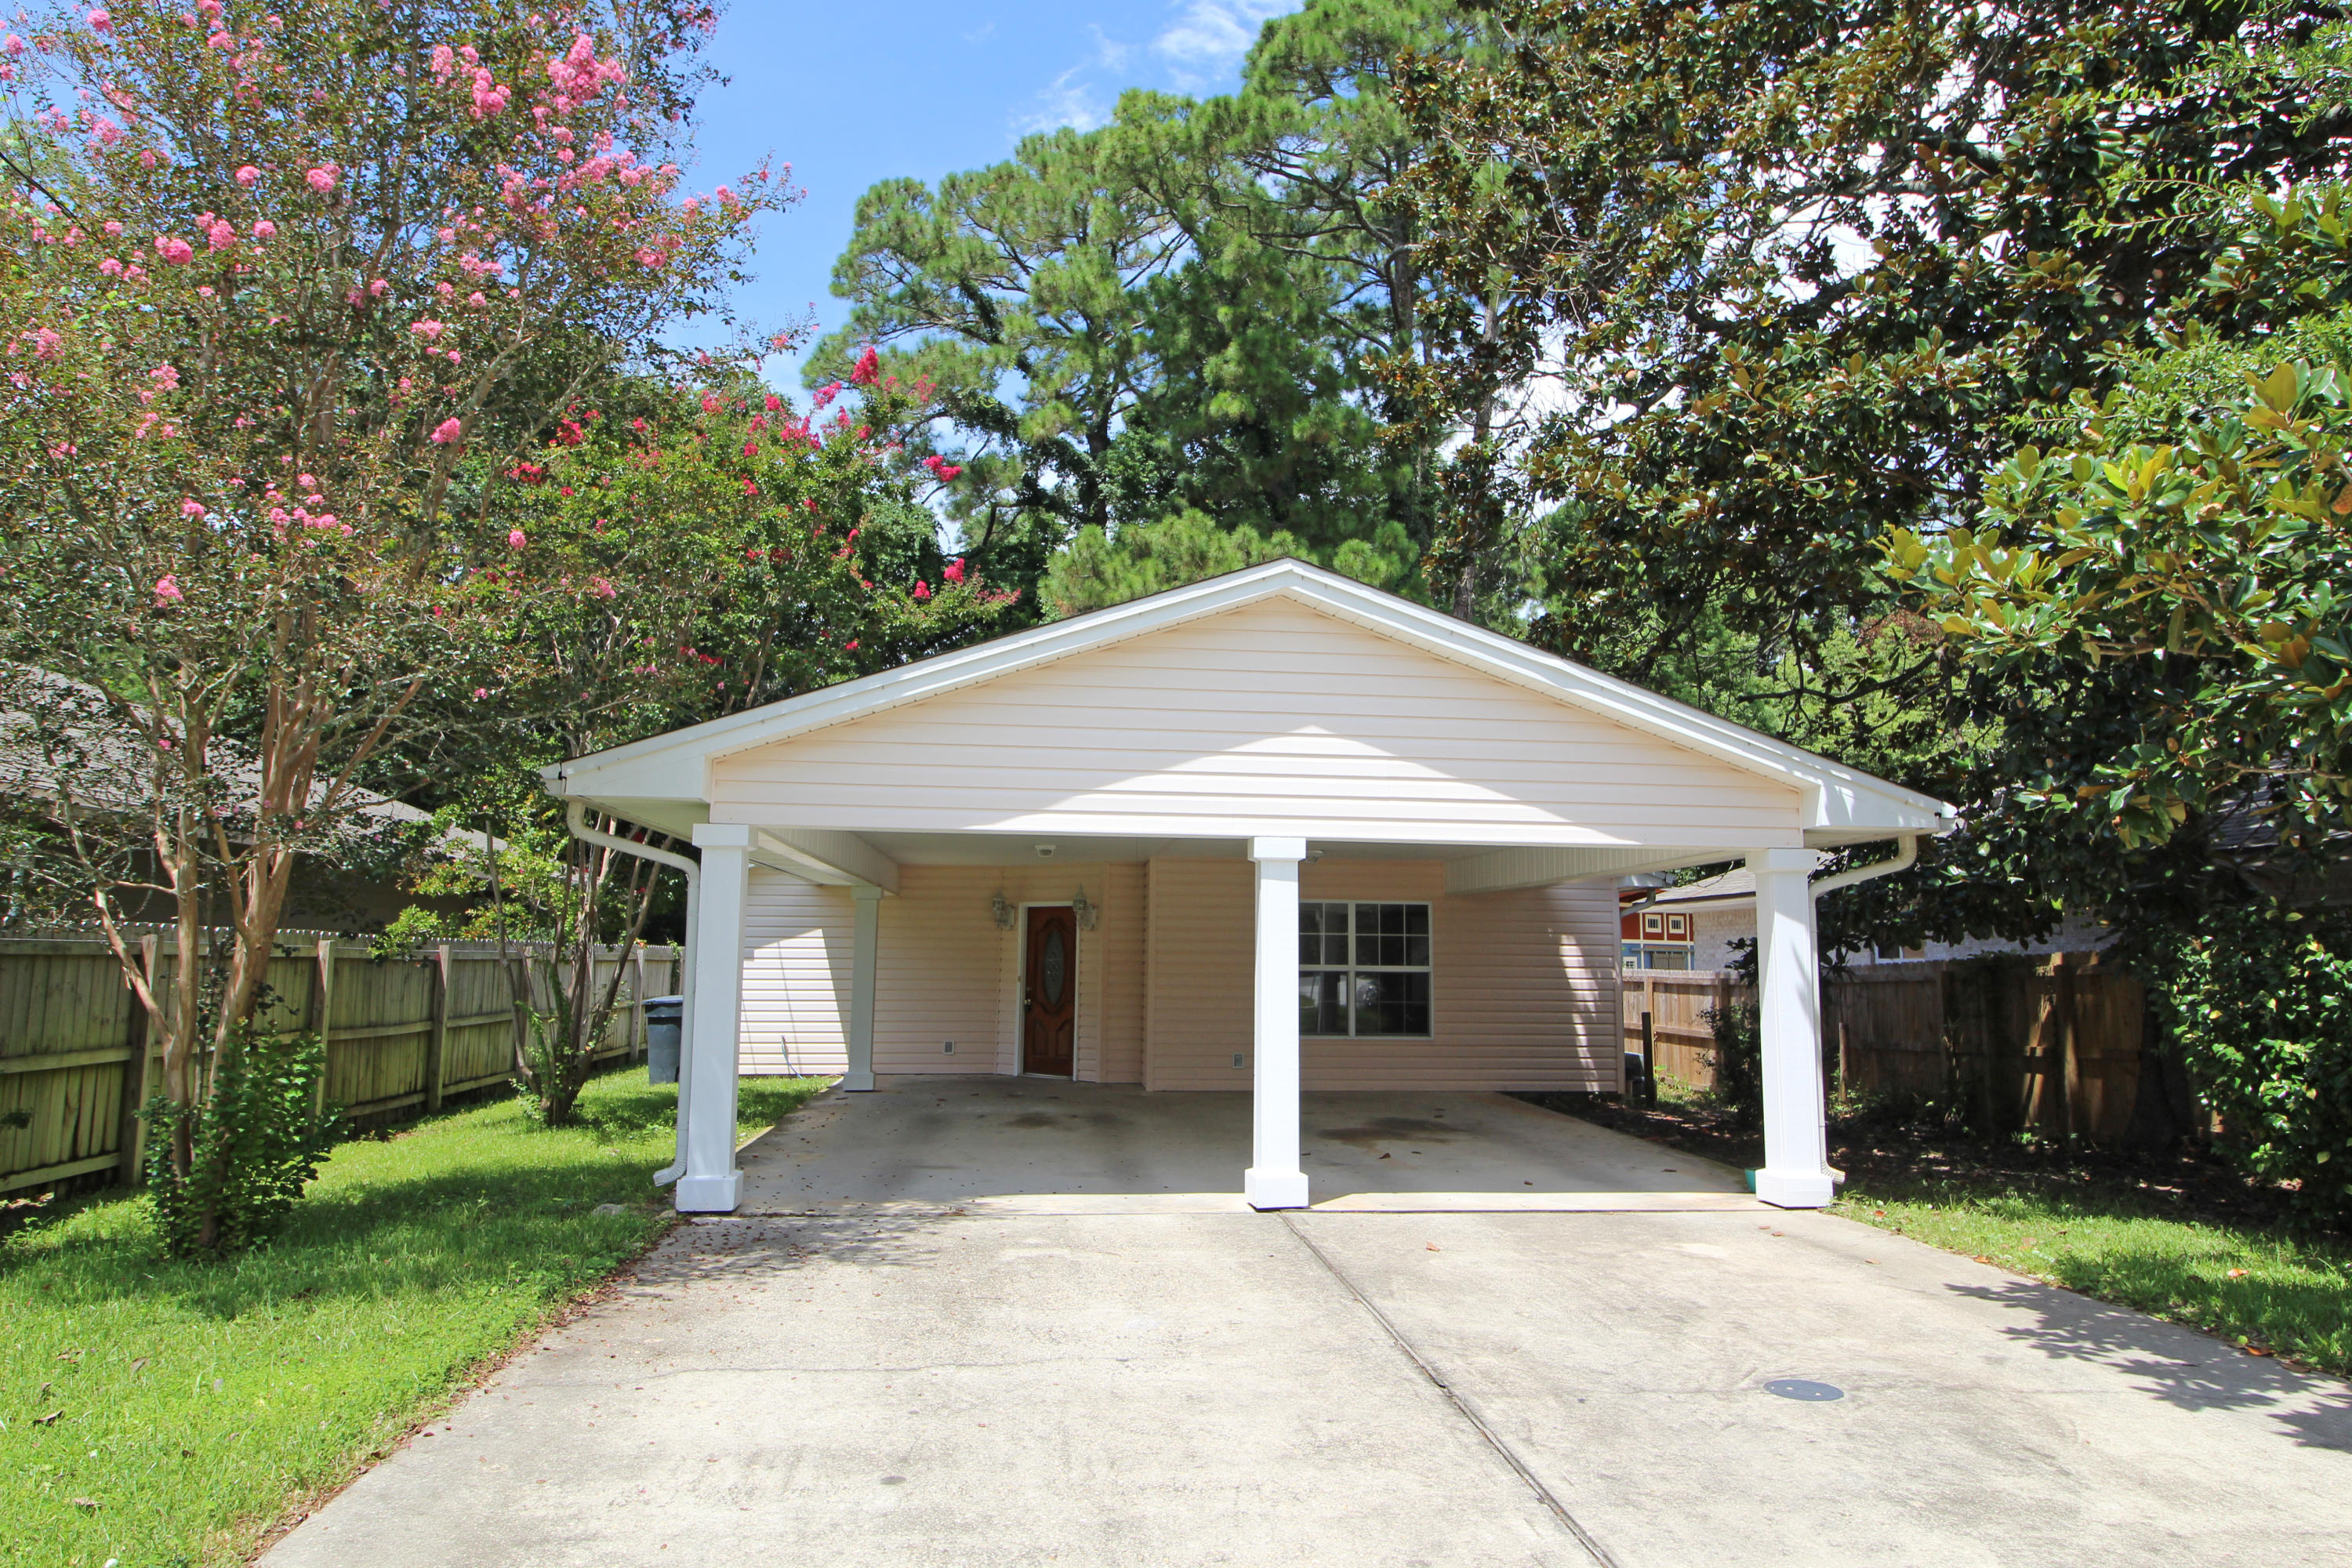 Commercial Property For Rent Fort Walton Beach Fl